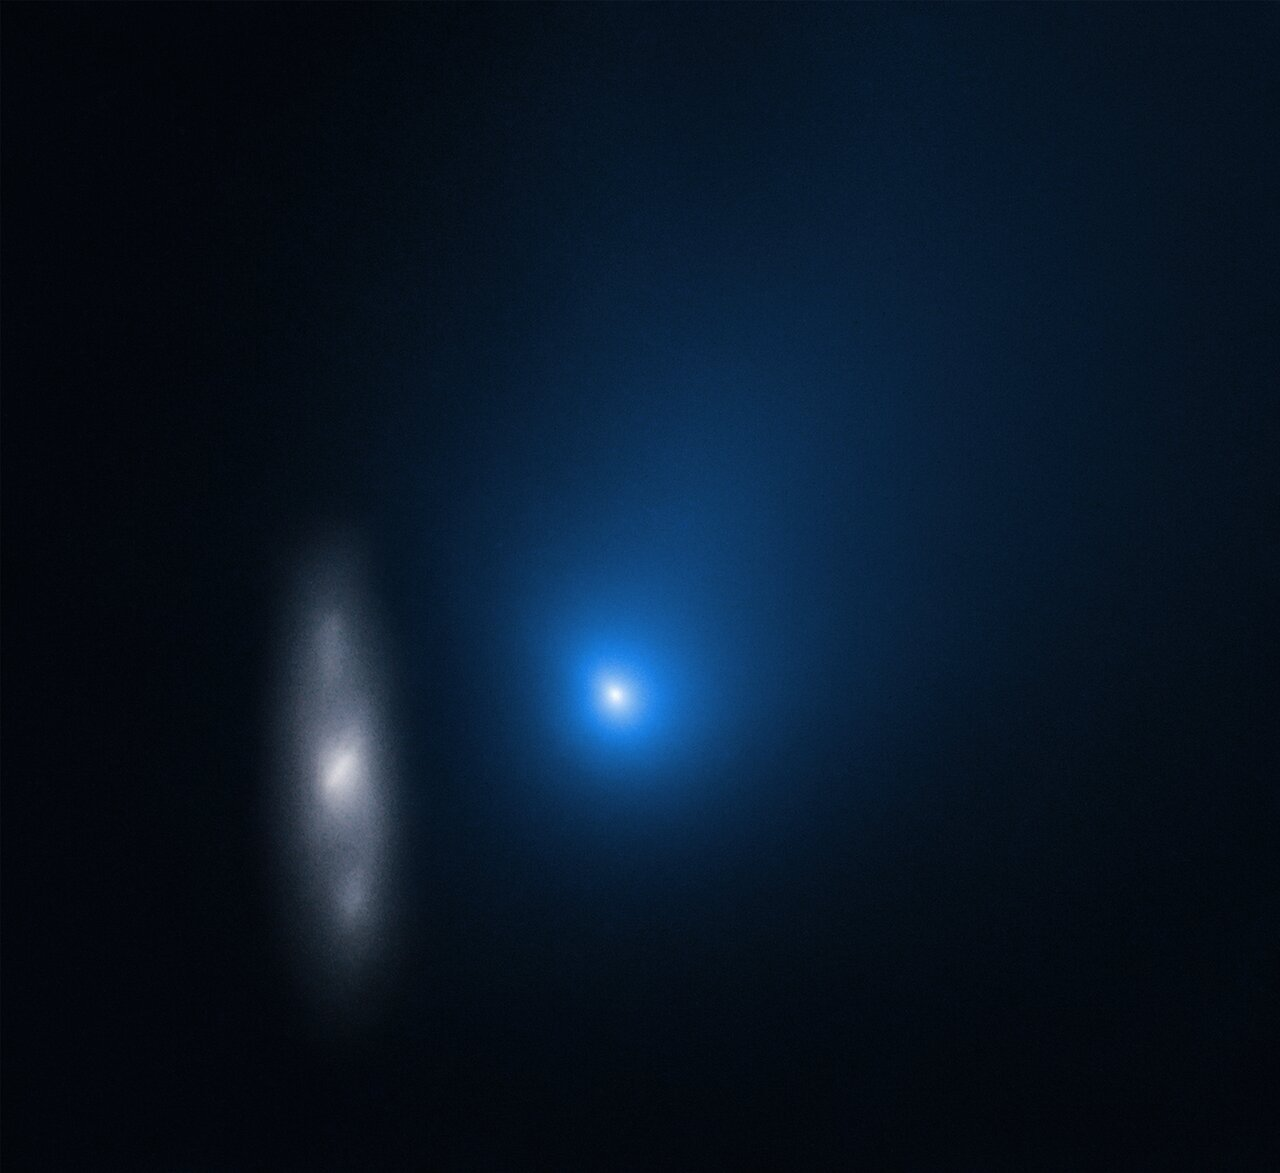 Photo Release: Hubble Watches Interstellar Comet Borisov Speed Past the Sun